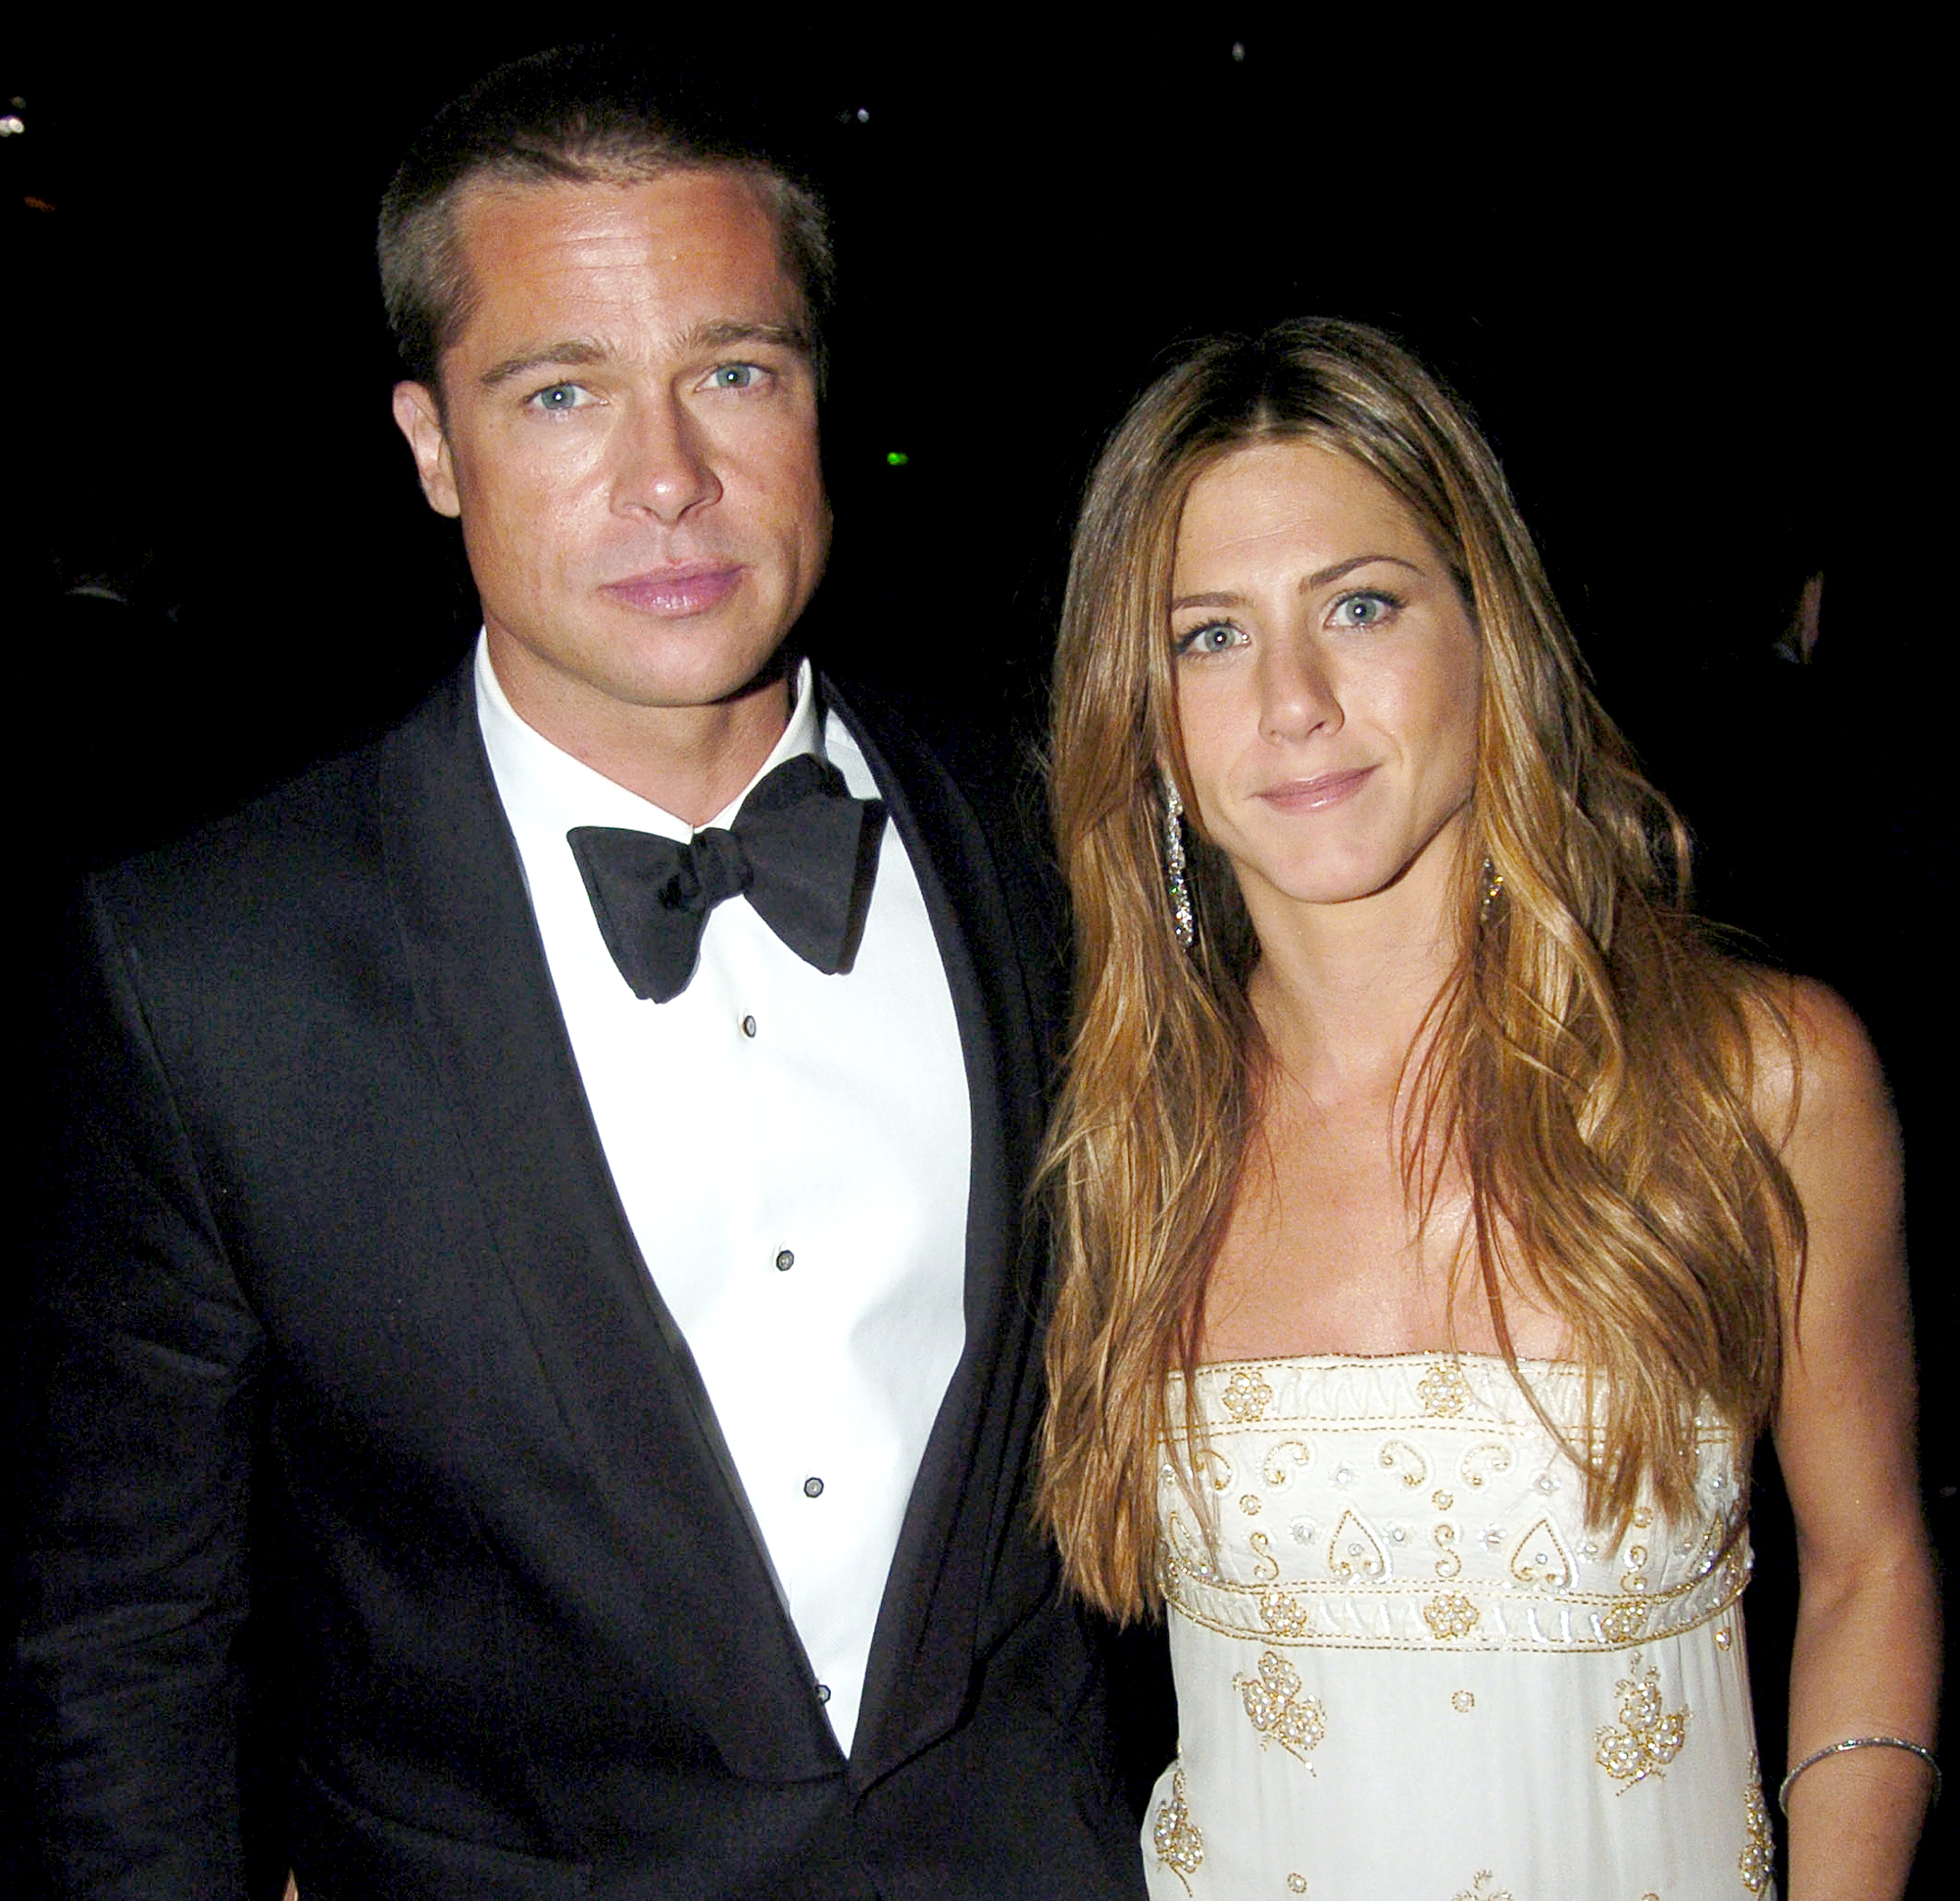 """jennifer-aniston-brad-pitt-divorce-relationship - The couple announced their split in January 2005 in a joint statement that read: """"We would like to announce that after seven years together we have decided to formally separate. For those who follow these sorts of things, we would like to explain that our separation is not the result of any speculation reported by the tabloid media. This decision is the result of much thoughtful consideration. We happily remain committed and caring friends with great love and admiration for one another."""""""